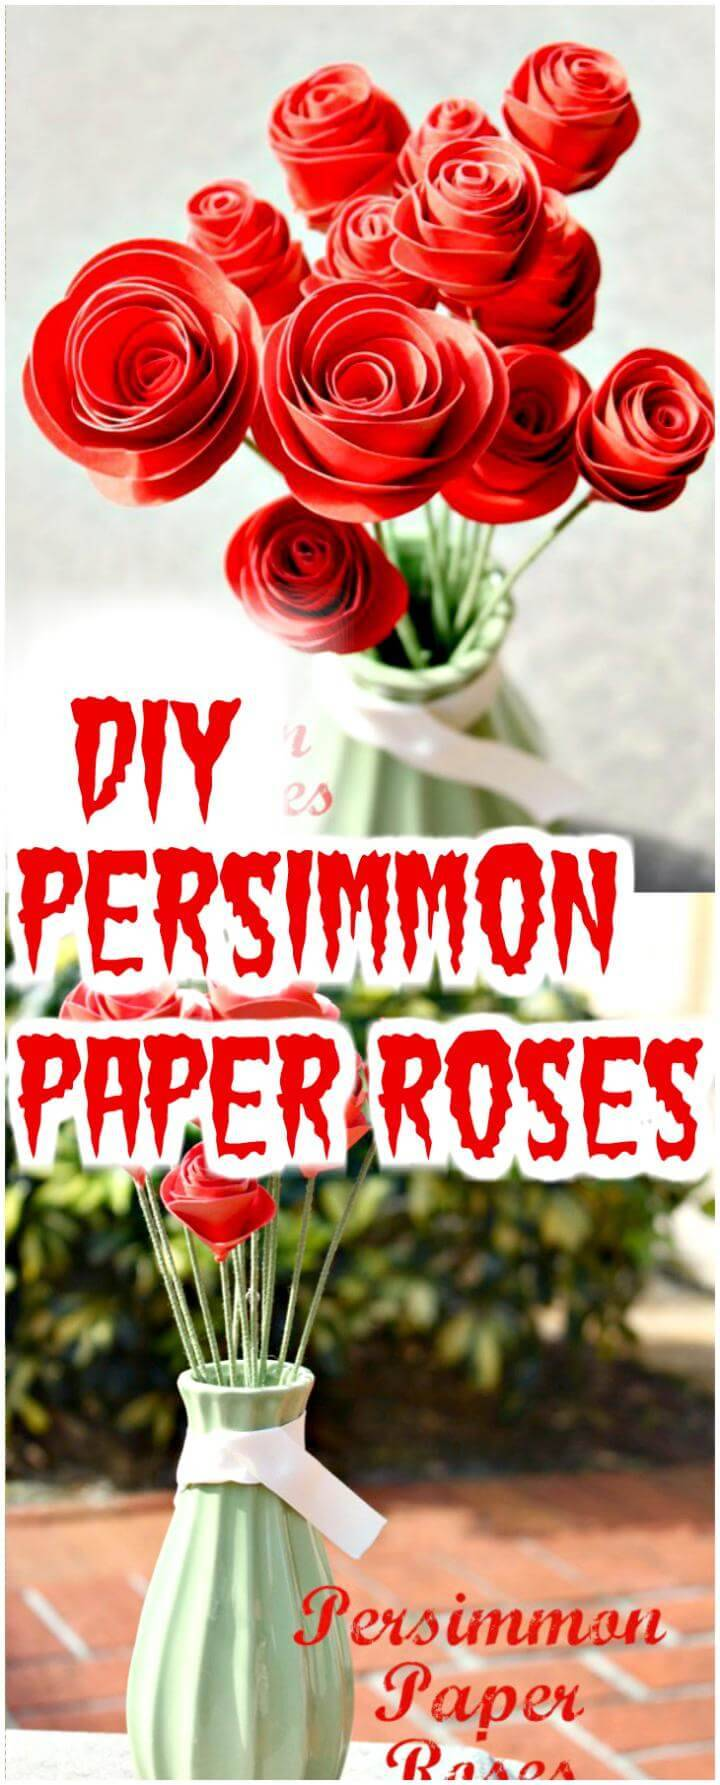 easy persimmon paper roses